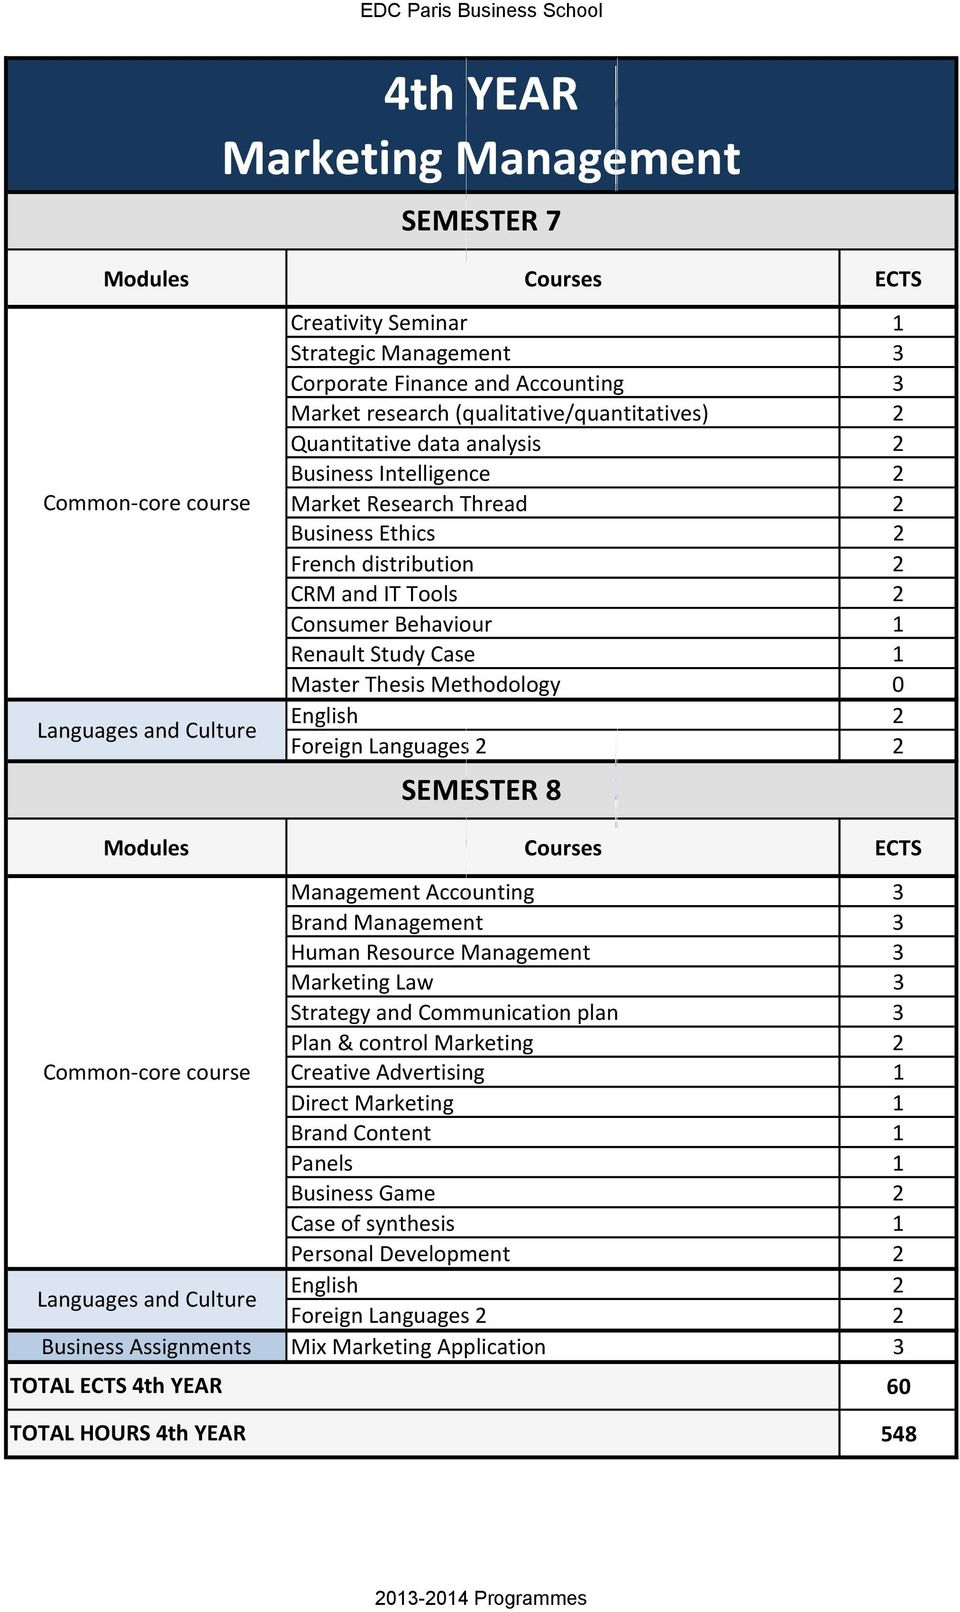 SEMESTER 8 Management Accounting 3 Brand Management 3 Human Resource Management 3 Marketing Law 3 Strategy and Communication plan 3 Plan & control Marketing 2 Common-core course Creative